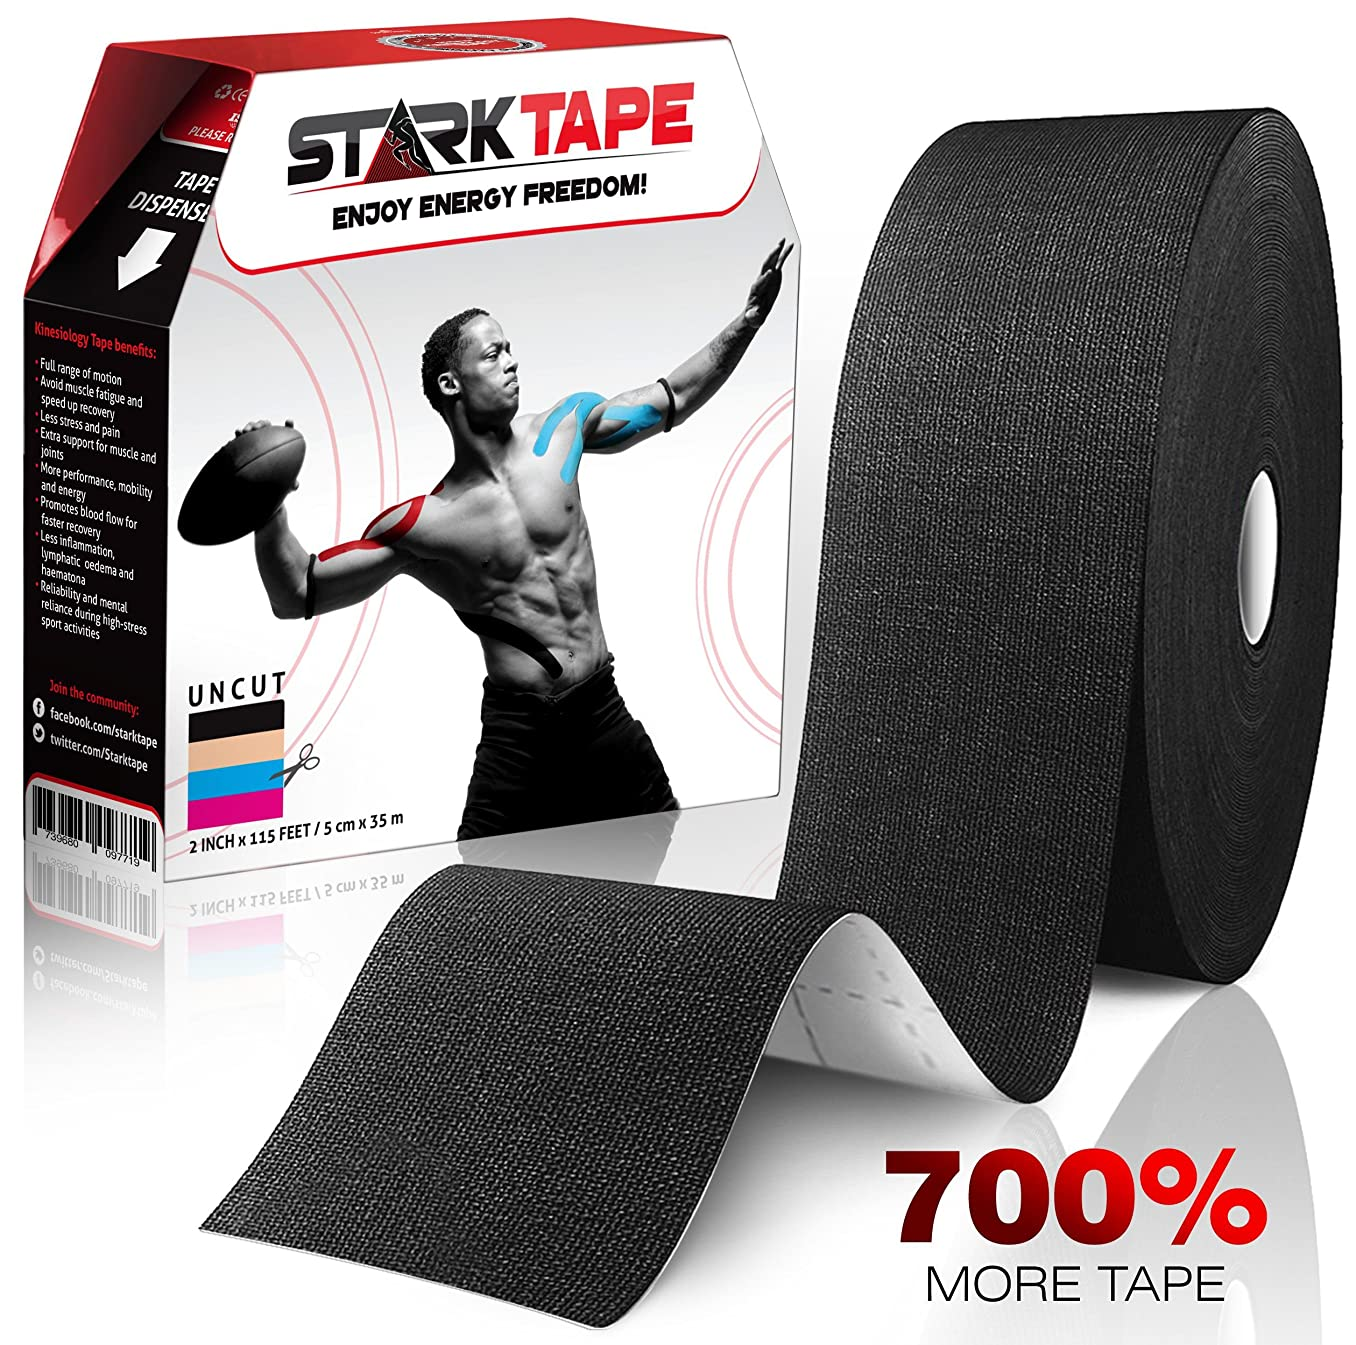 Kinesiology Tape Bulk | Designed to Help Boost Athletic Performance, Prevent Joint, Muscle Pain and Ease Inflammation | Easy to Apply, 97% Natural Cotton /3% Spandex hp20603818119191